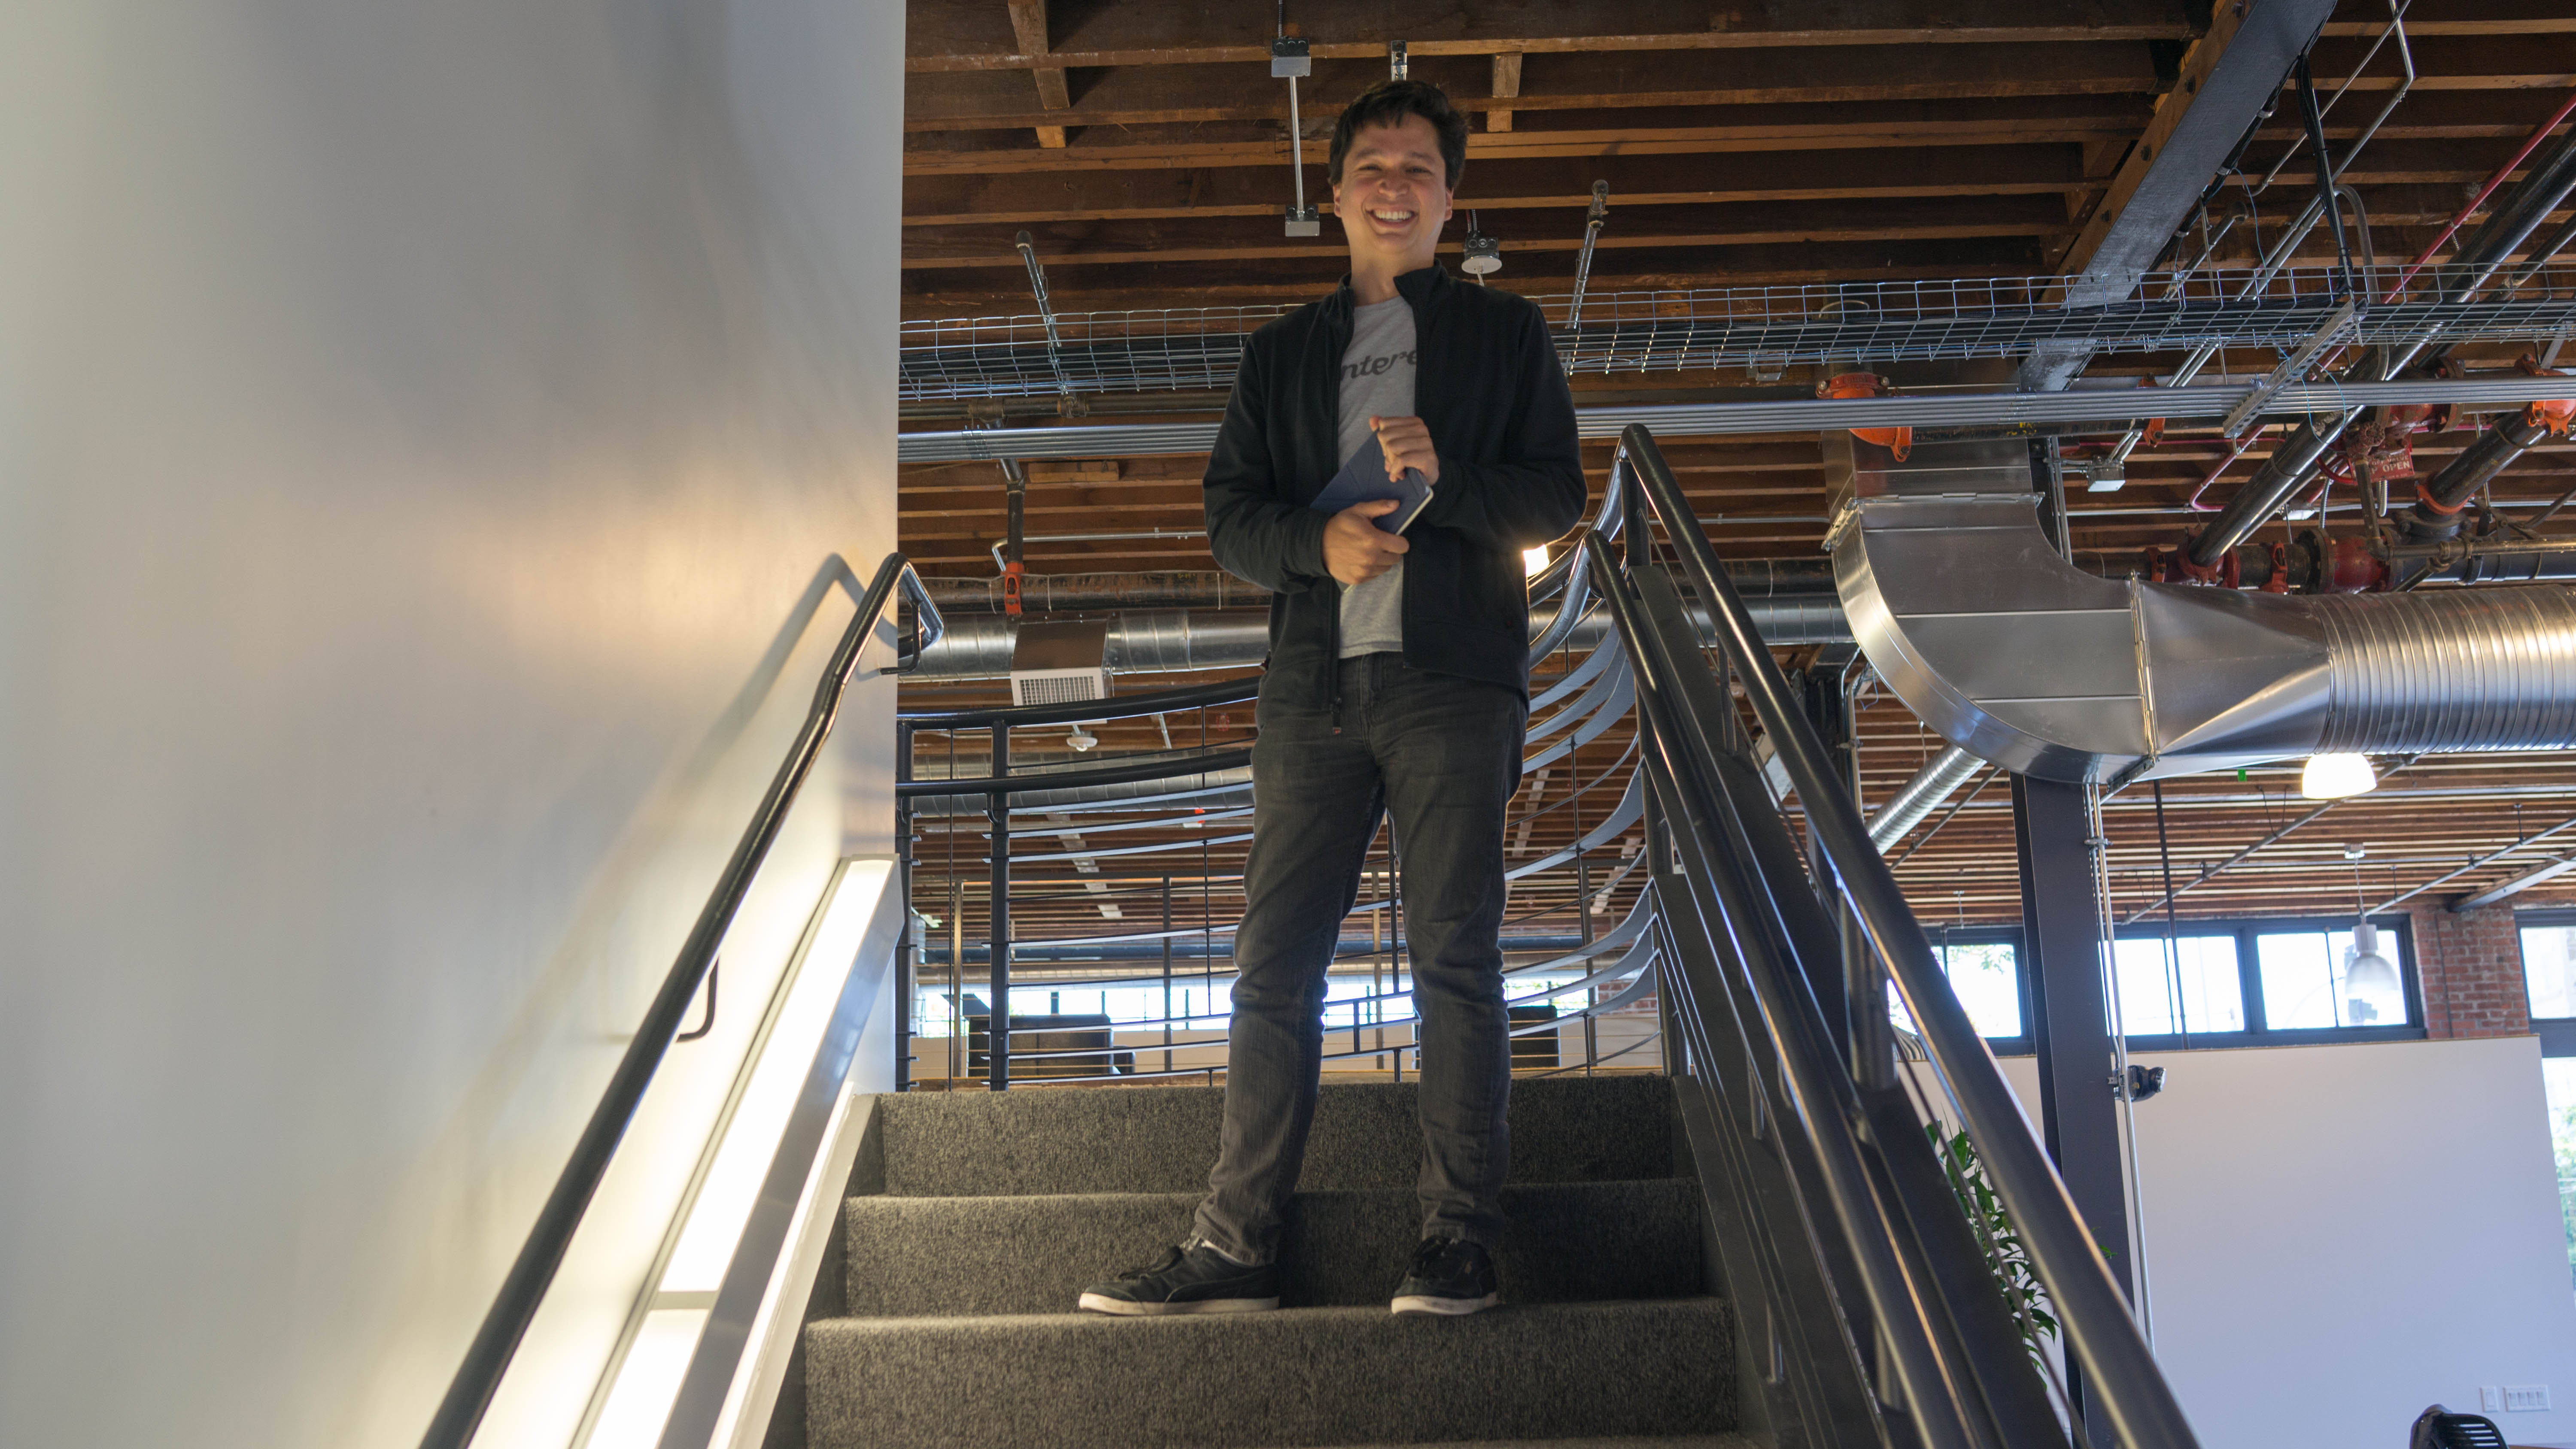 Pinterest CEO Ben Silbermann at the company's new offices in San Francisco.